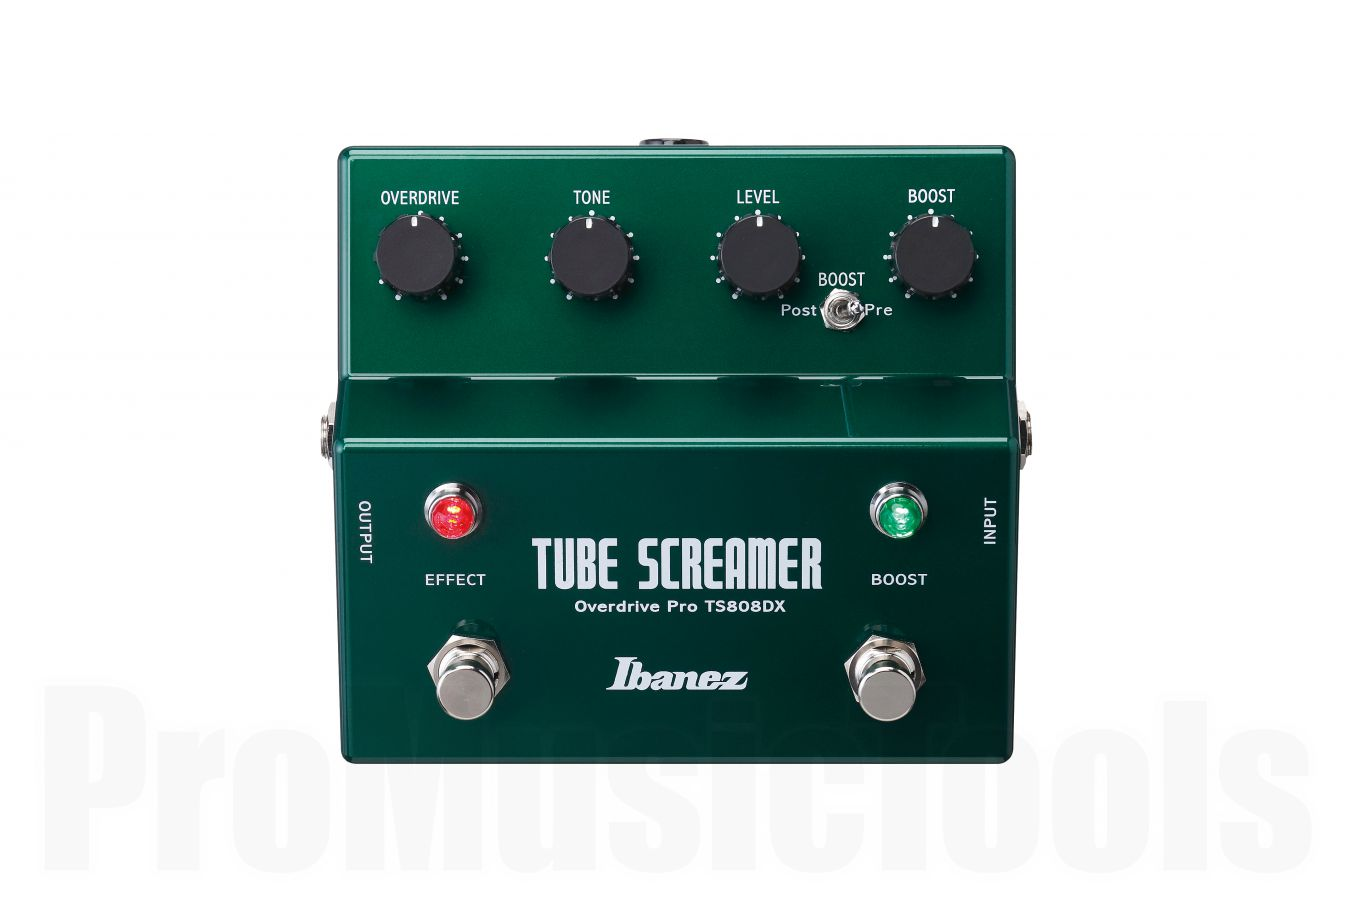 Ibanez TS808DX Tube Screamer with boost